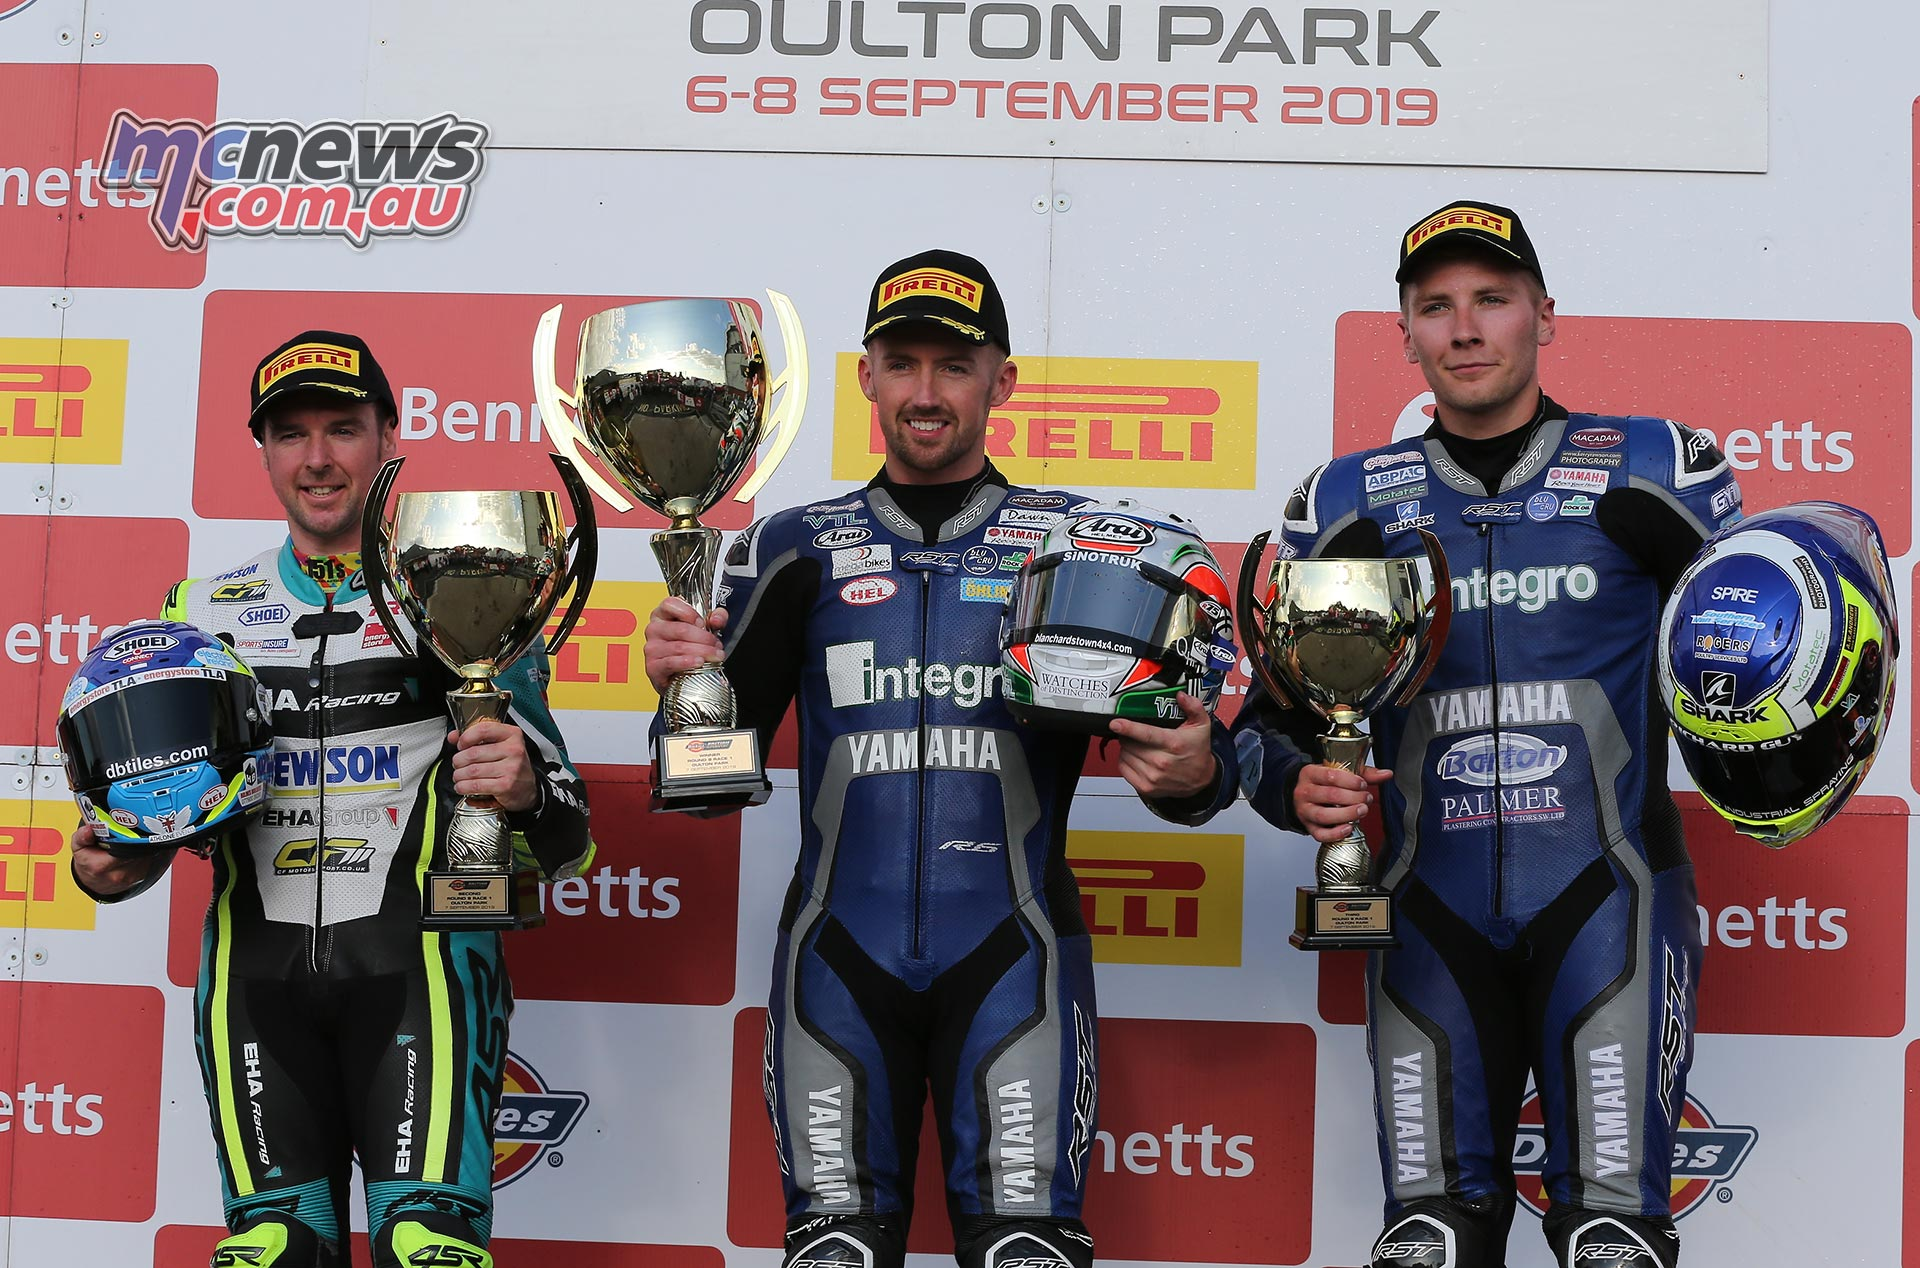 BSB Rnd OultonPark Saturday Supersport Podium Kennedy Seely Ryde